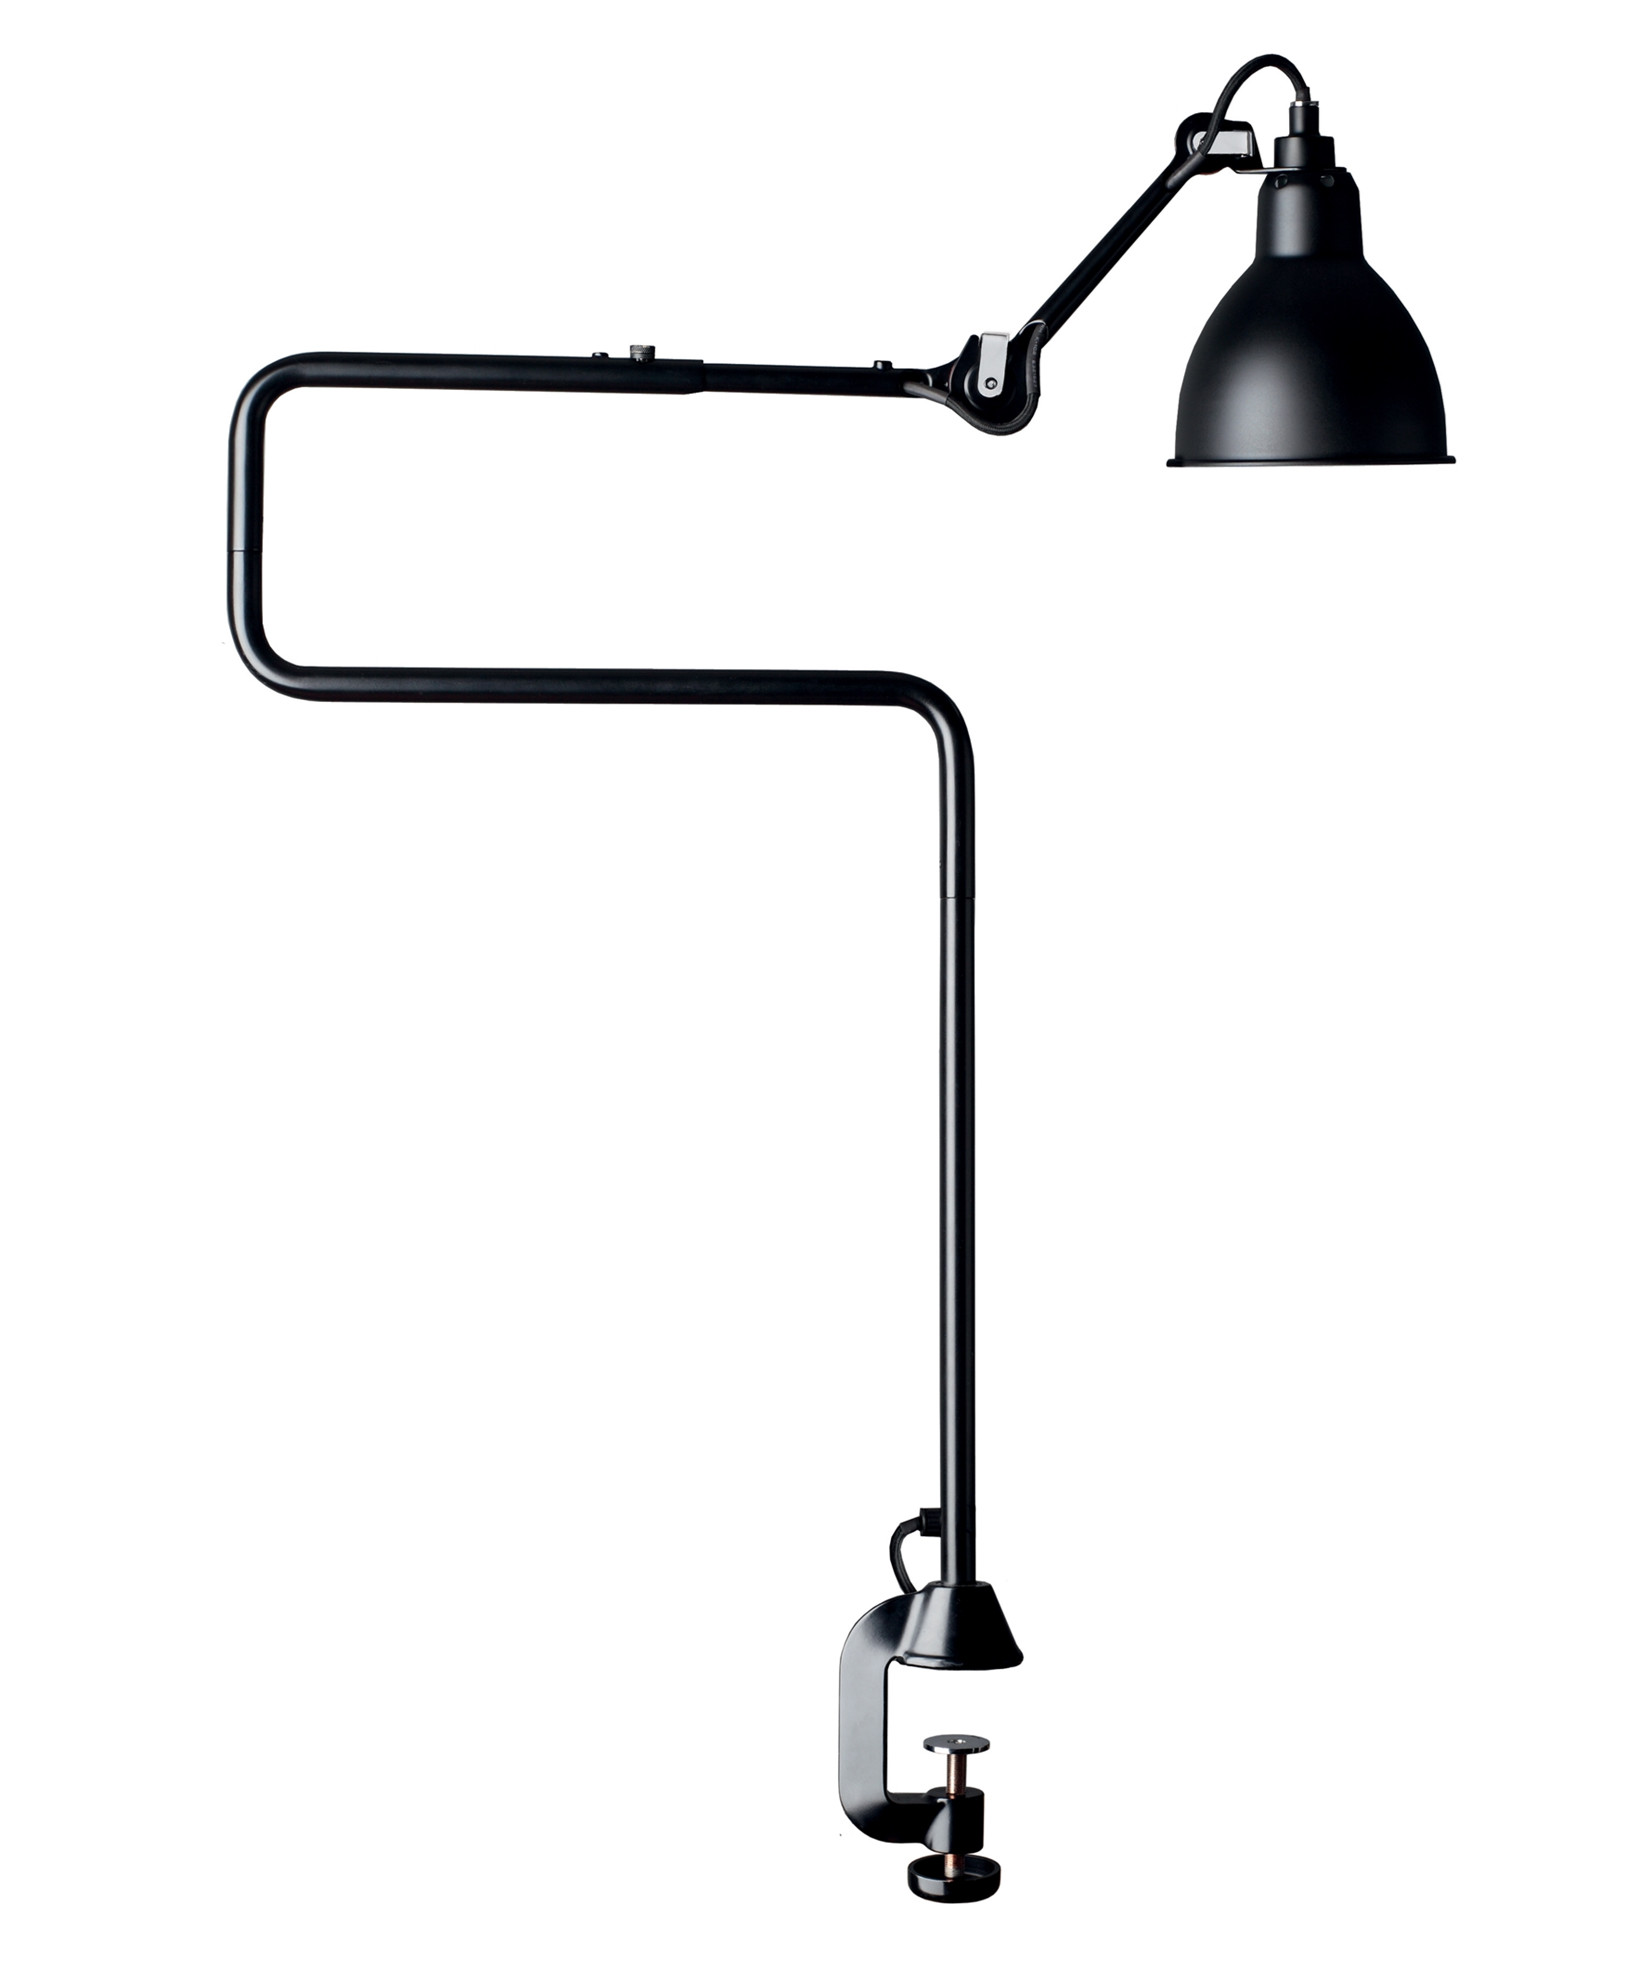 Image of   211-311 Bordlampe Sort - Lampe Gras